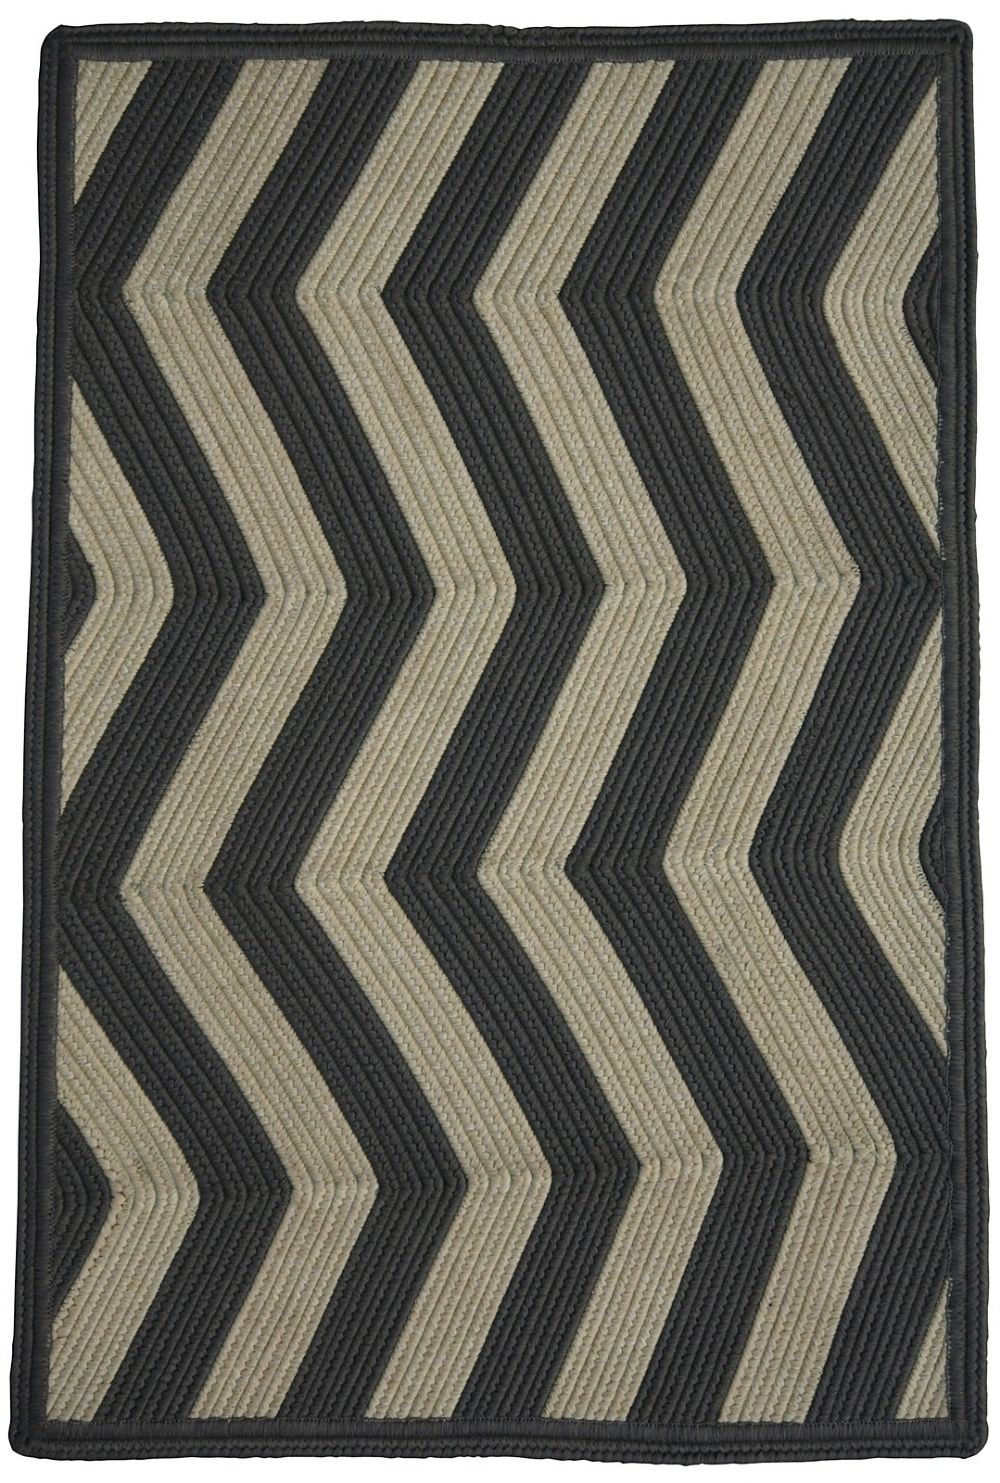 homespice decor sable ivory braided area rug collection